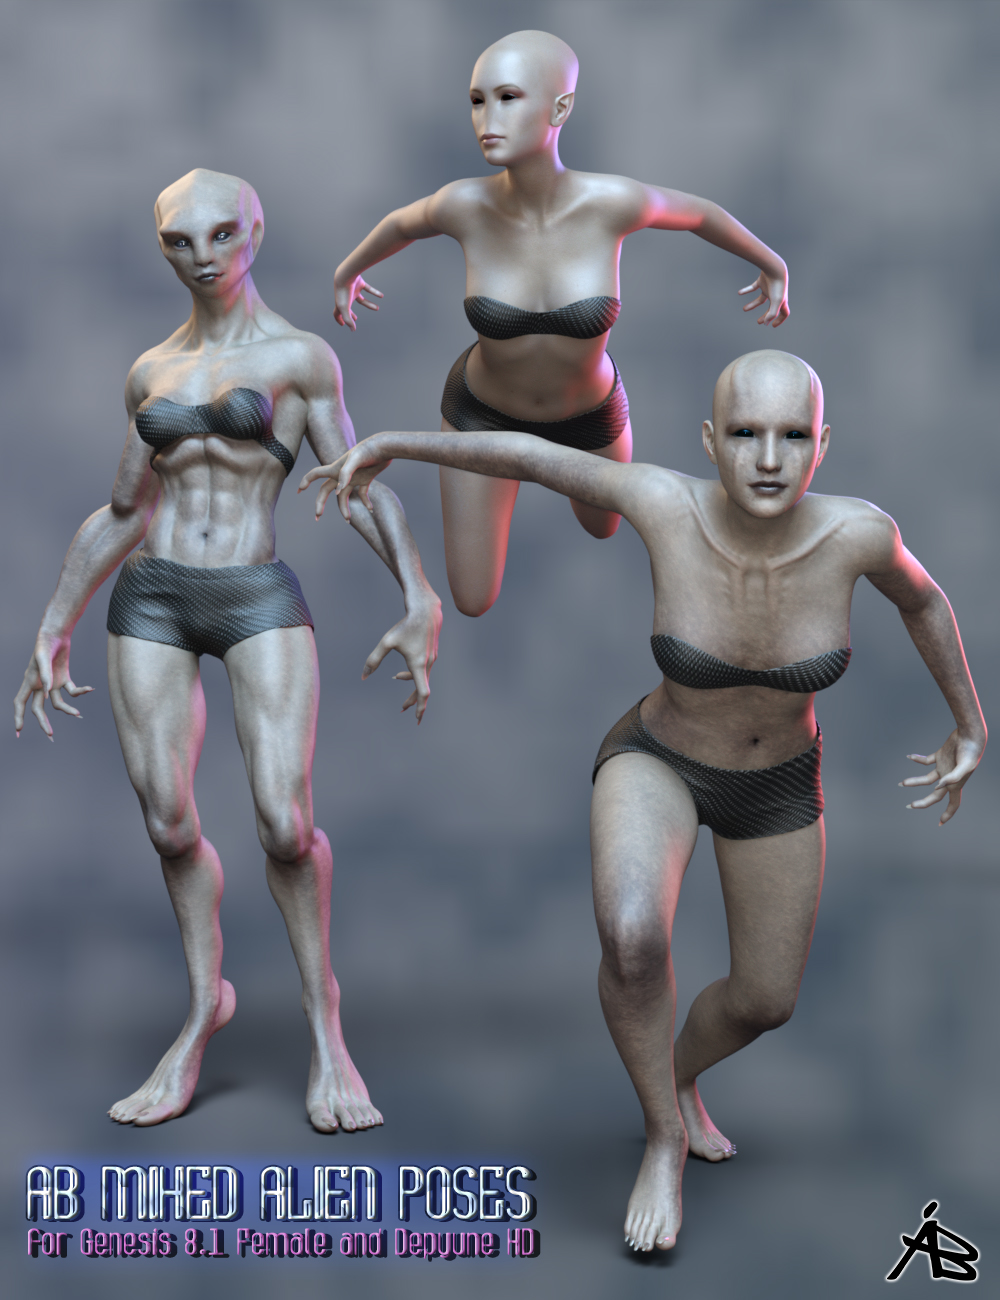 AB Mixed Alien Poses for Genesis 8.1 Female and Delpyune HD by: AuraBianca, 3D Models by Daz 3D